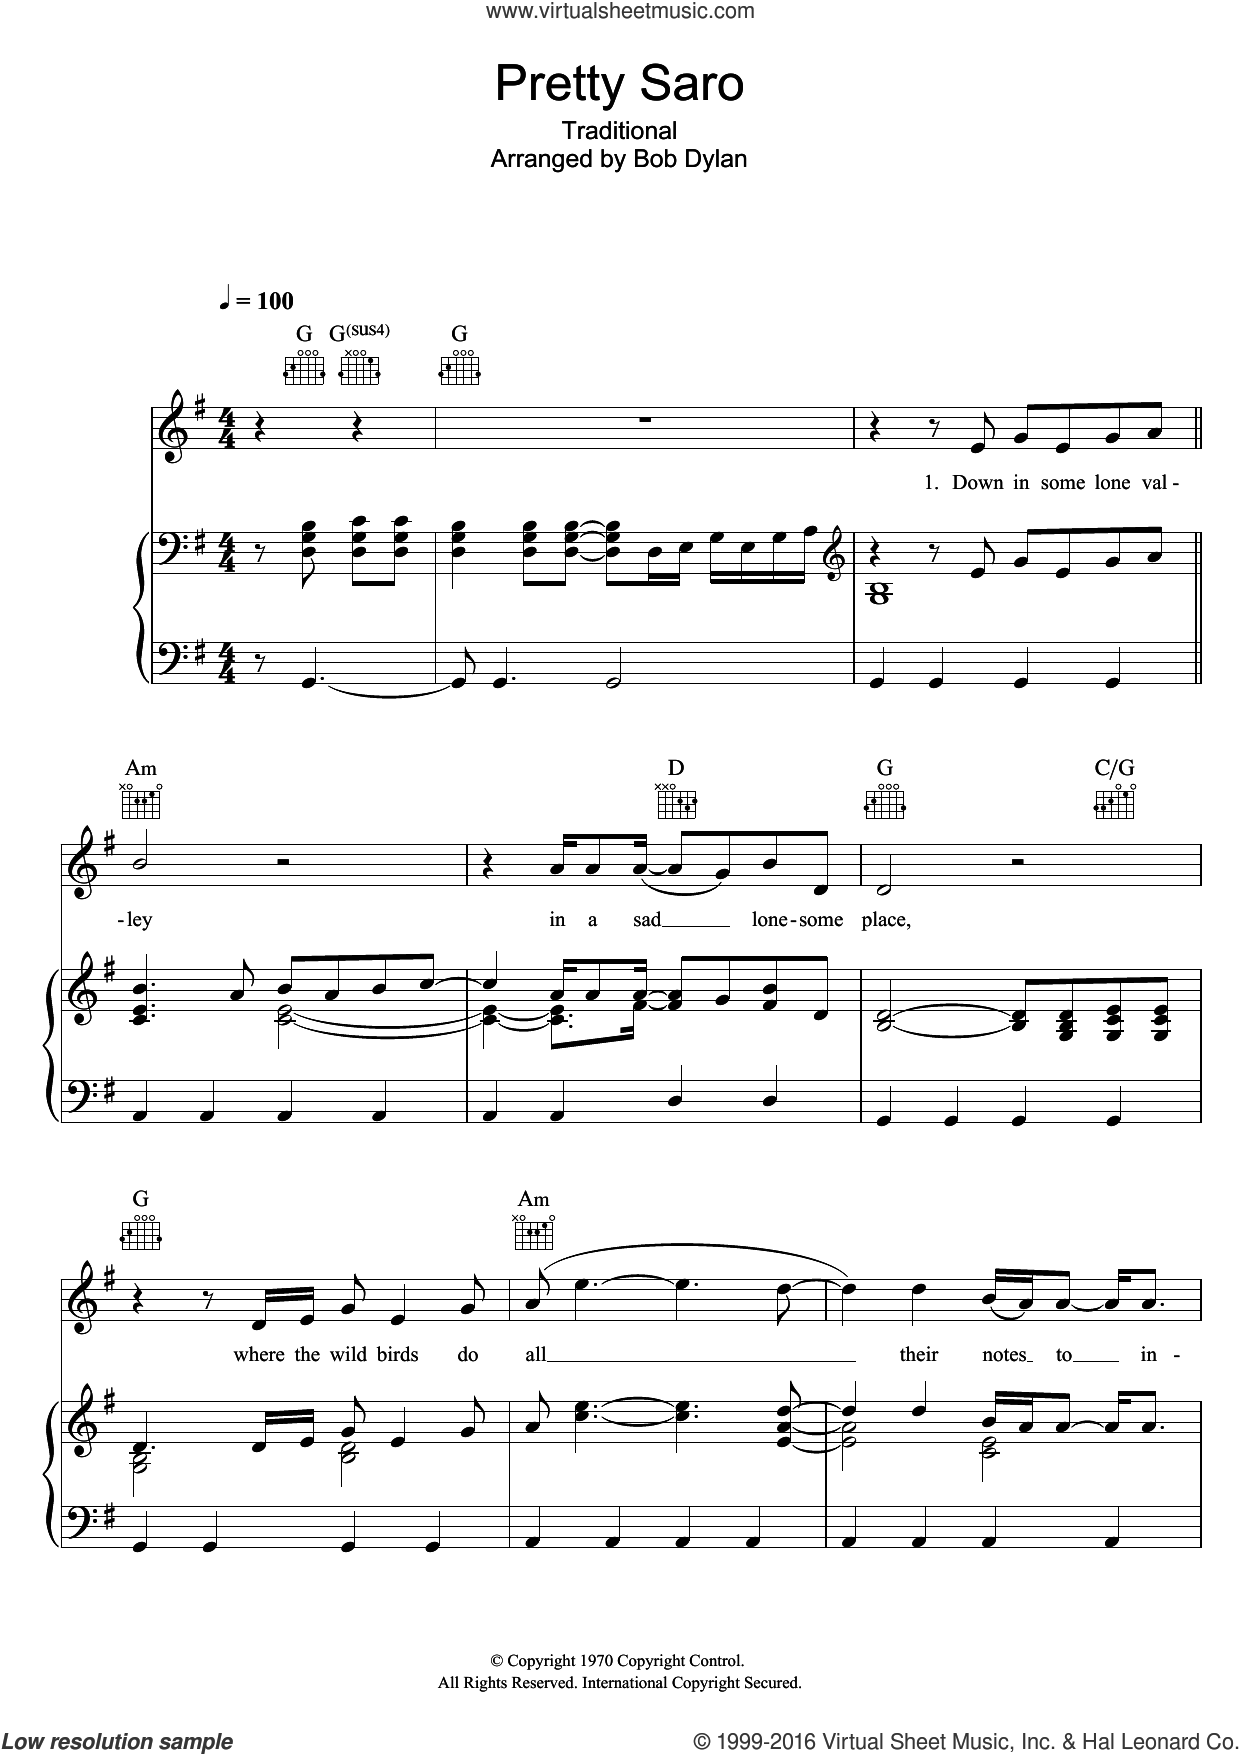 Pretty Saro sheet music for voice, piano or guitar by Bob Dylan and Miscellaneous, intermediate skill level